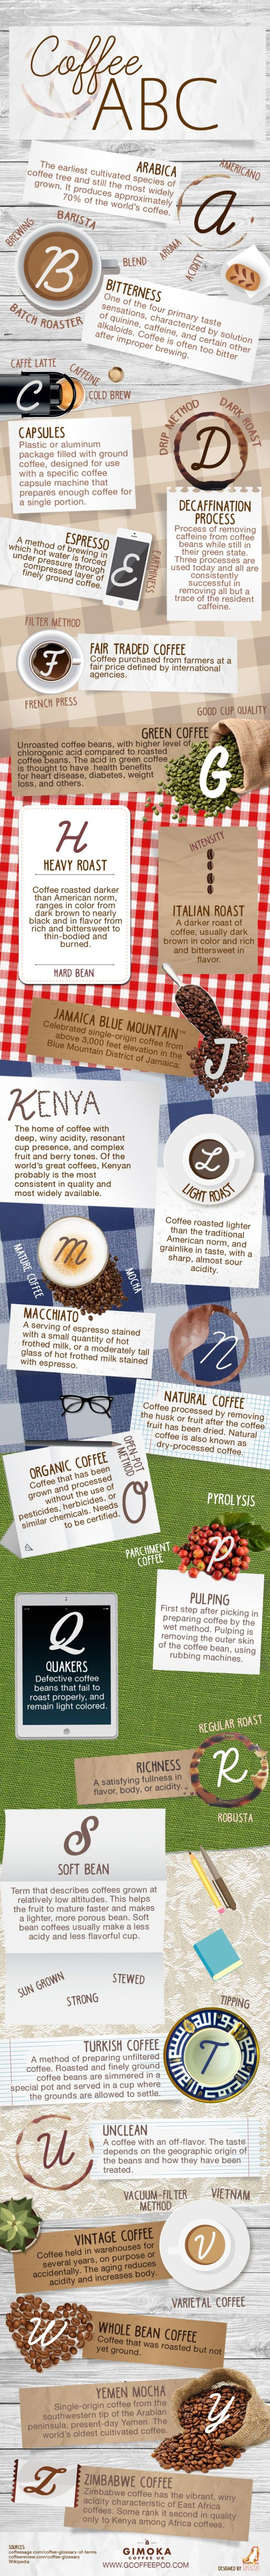 """Super Fun Facts About Coffee from A to Z on chemistrycachet.com """"Chemist solutions for healthy living, easy baking, pretty flowers, & endless coffee"""""""